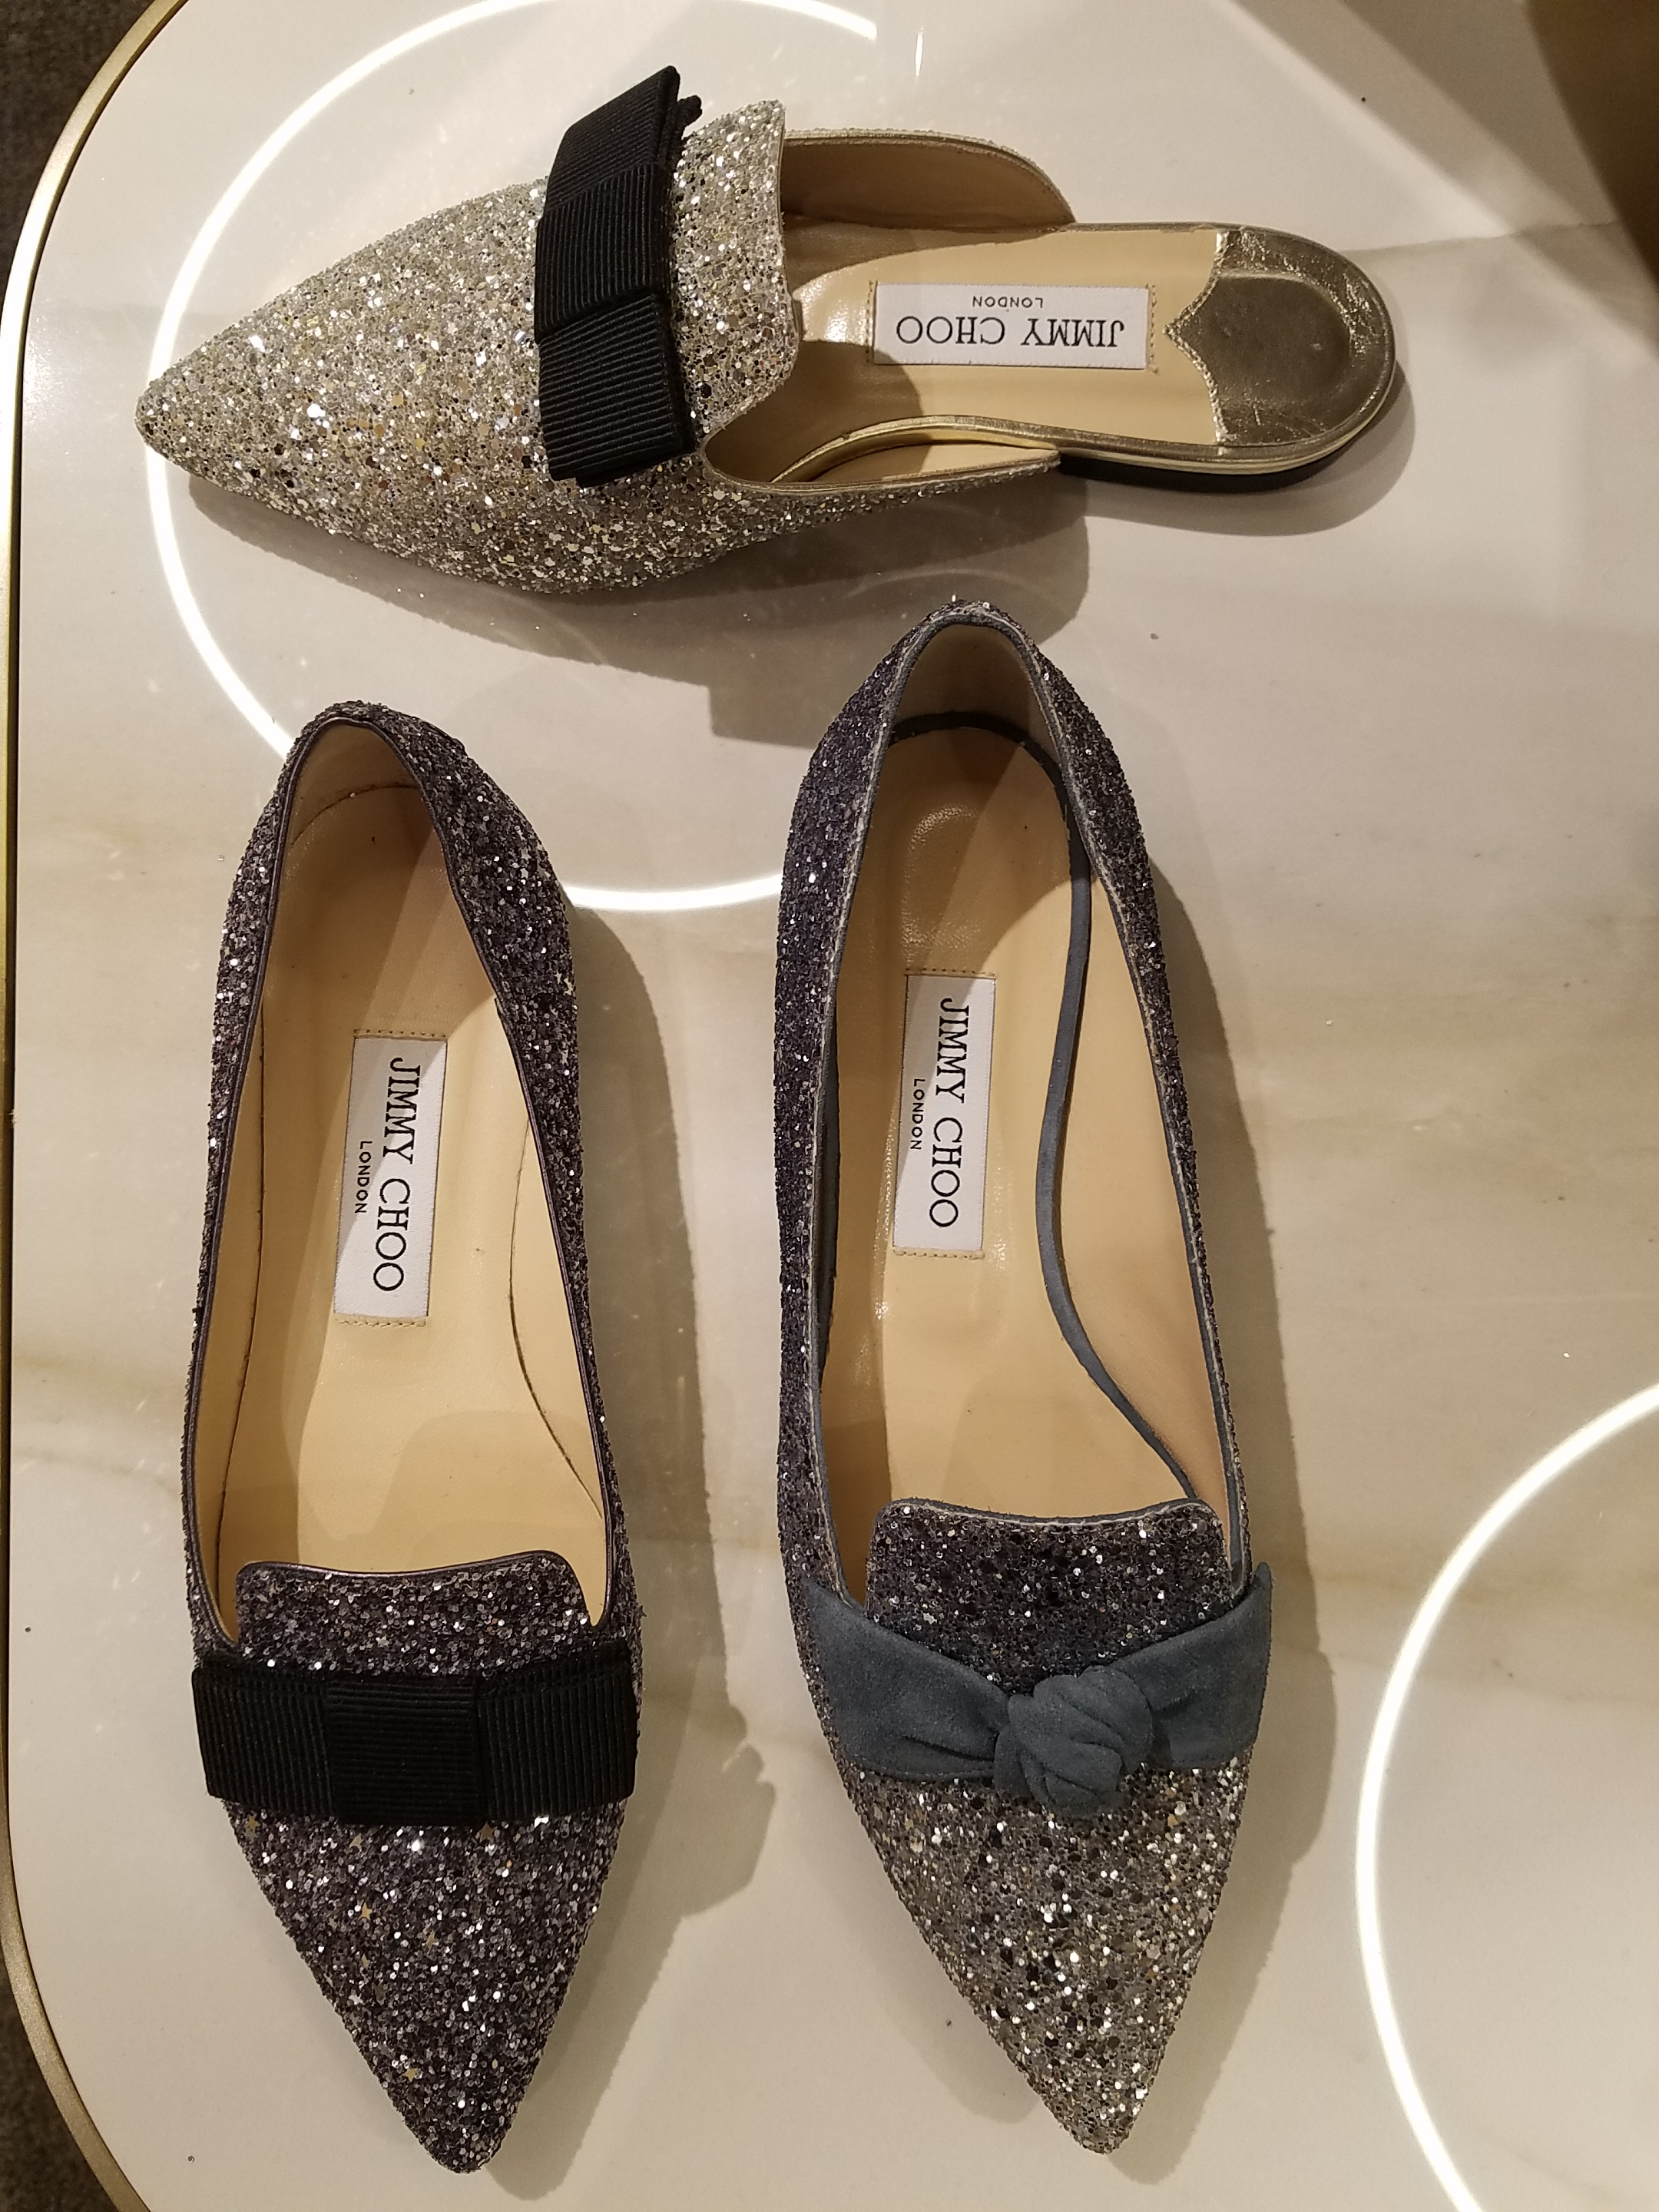 Jimmy Choo - Grand Canal Shoppes